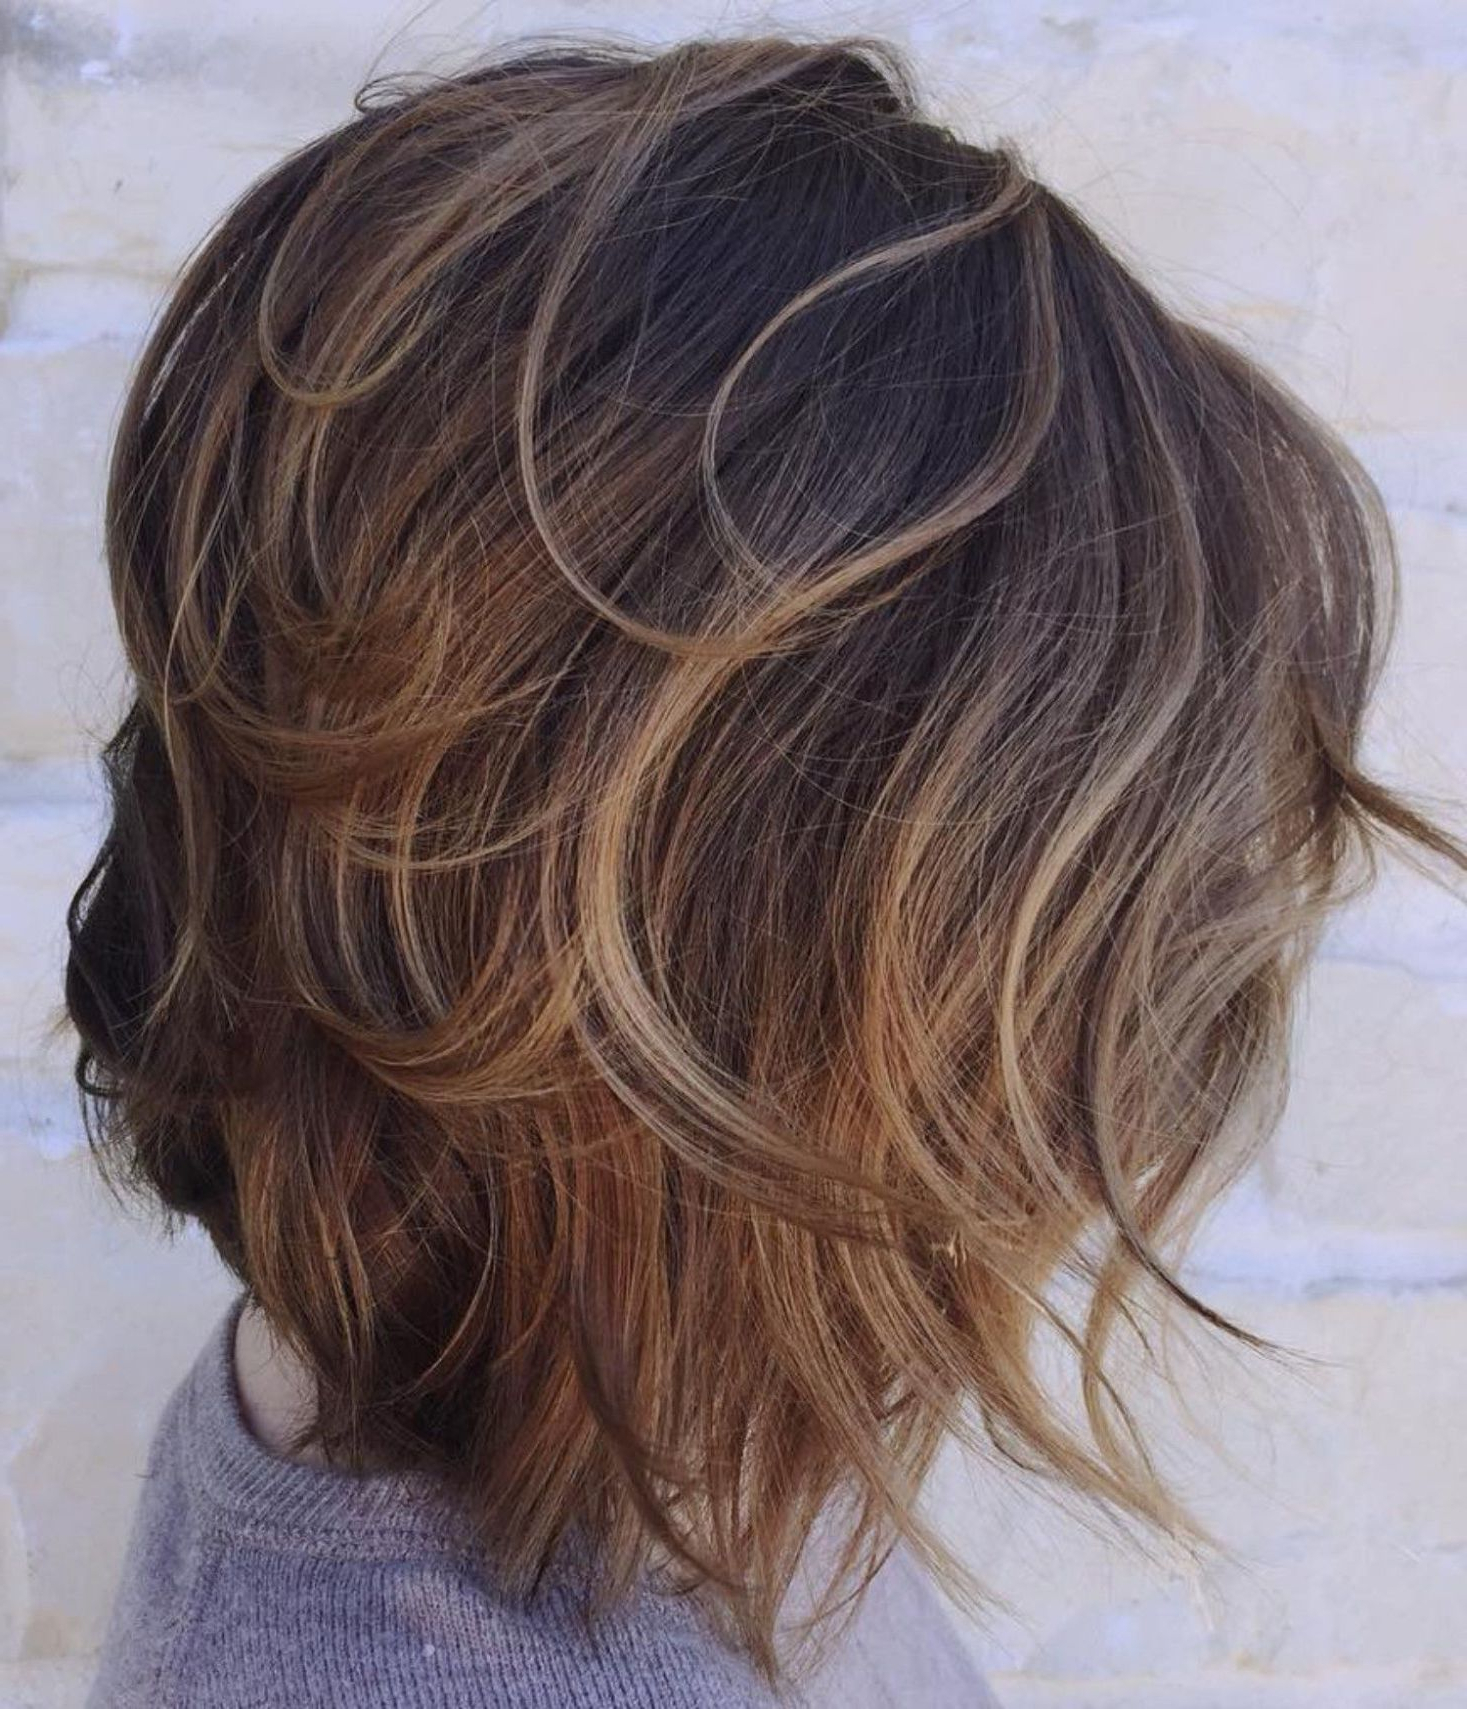 100 Mind Blowing Short Hairstyles For Fine Hair | Pinterest | Short With Regard To Burgundy And Tangerine Piecey Bob Hairstyles (View 12 of 20)